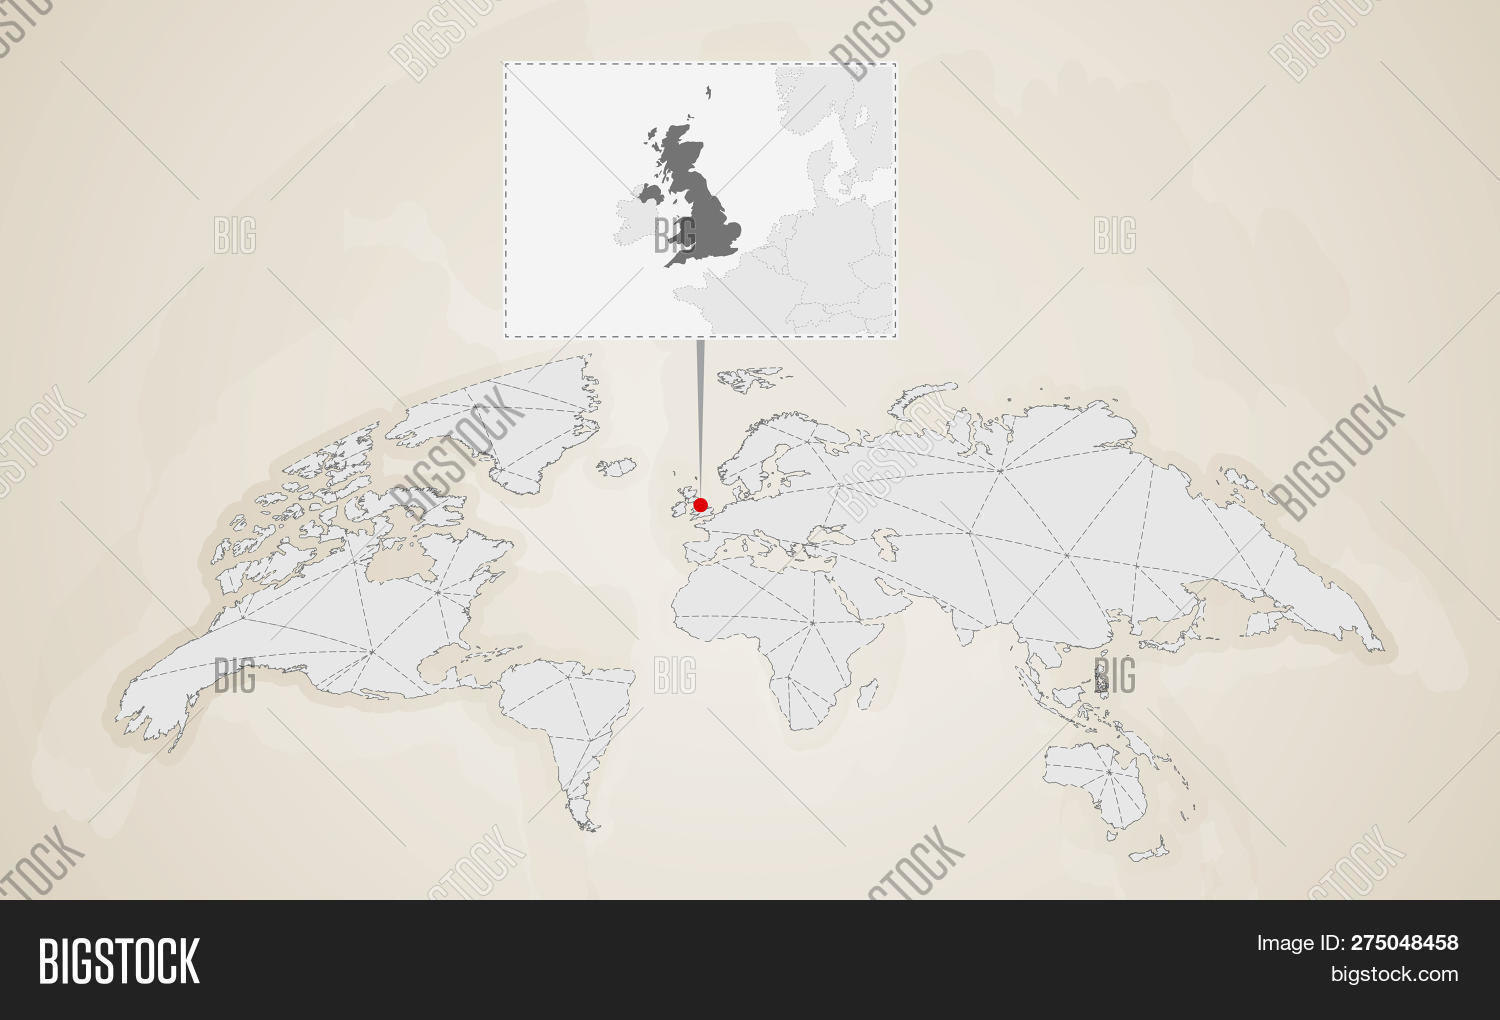 Map United Kingdom Vector & Photo (Free Trial) | Bigstock on russia on world map, philippines on world map, saudi arabia on world map, indonesia on world map, great britain on world map, europe map, spain on world map, cyprus on world map, malaysia on world map, solomon islands on world map, germany on world map, brazil on world map, china on world map, london united kingdom map, sweden on world map, india on world map, france on world map, italy on world map, belgium on world map, netherlands on world map,